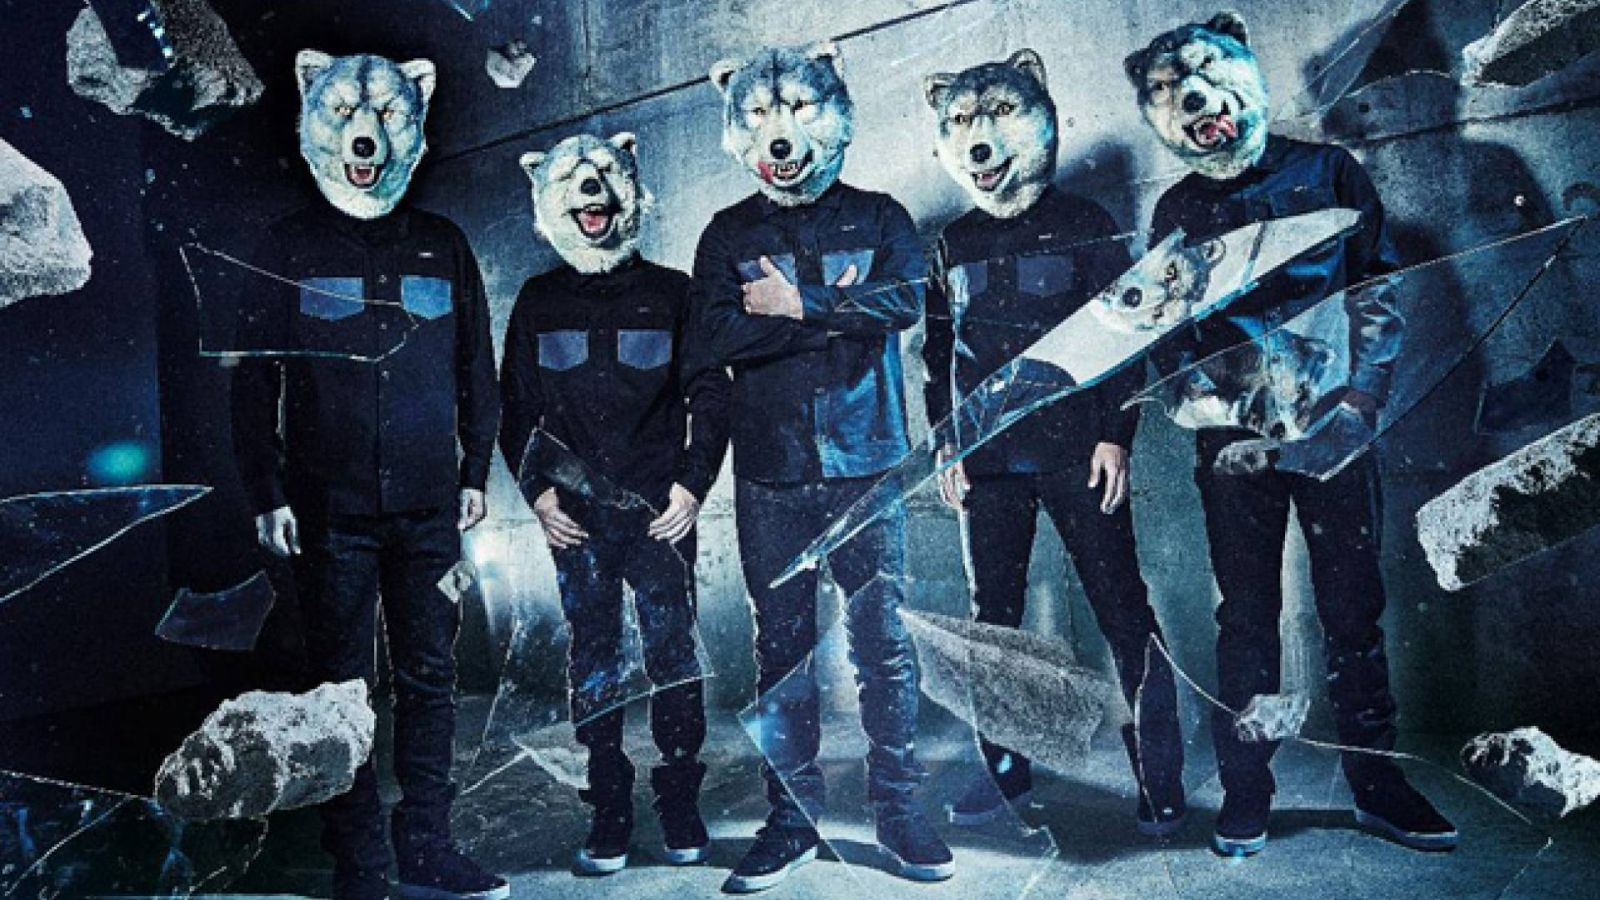 MAN WITH A MISSION в Санкт-Петербурге © Sony Music Entertainment (Japan) Inc. All rights reserved.